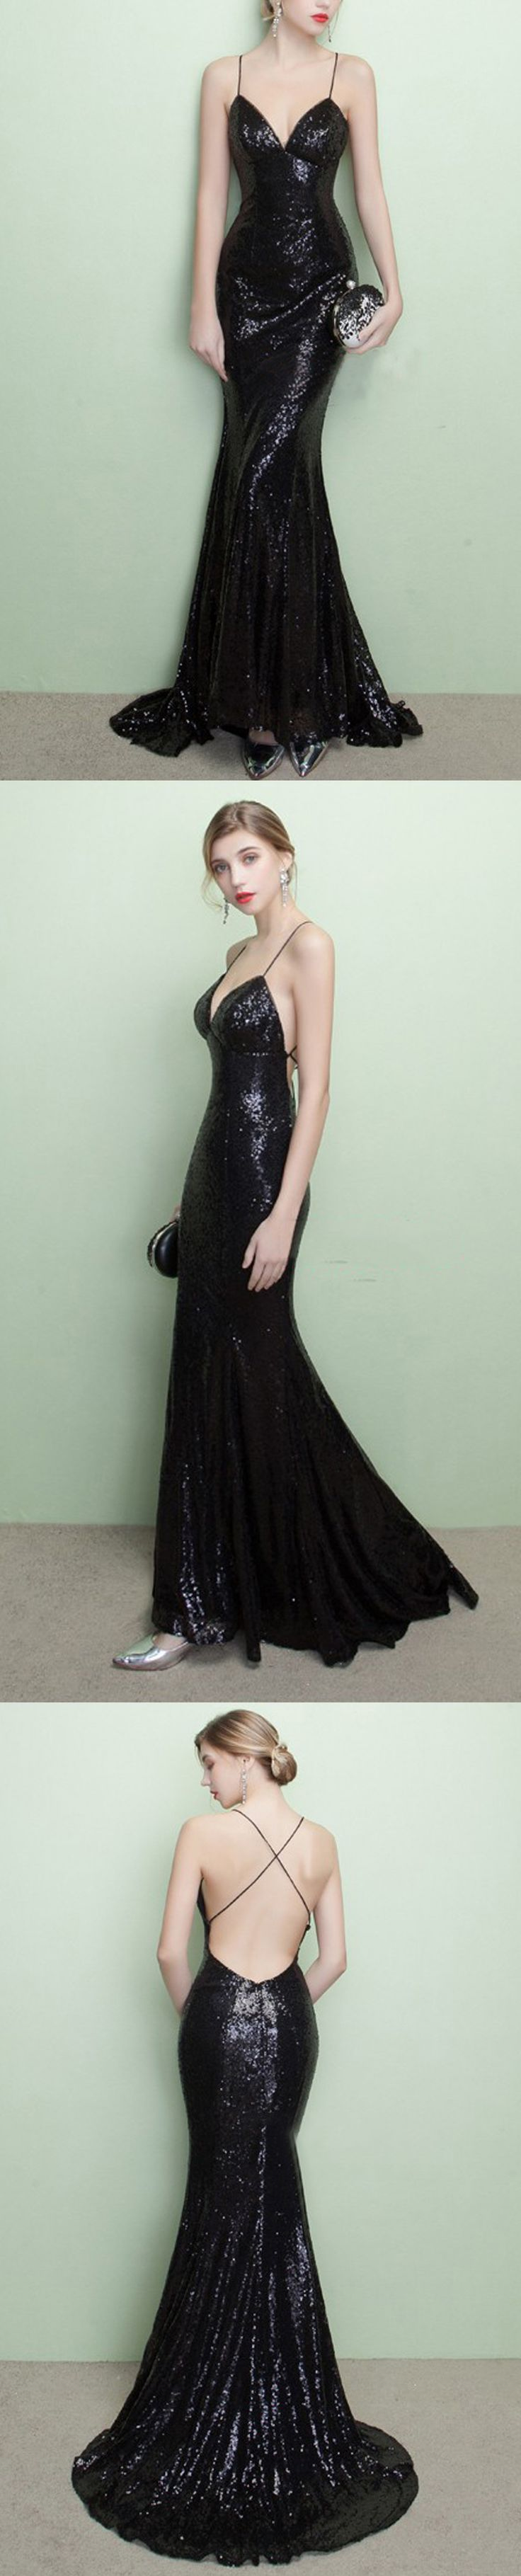 Sparkly black sequins prom dress,lace up back prom dress,spaghetti strap prom dress,PD210149